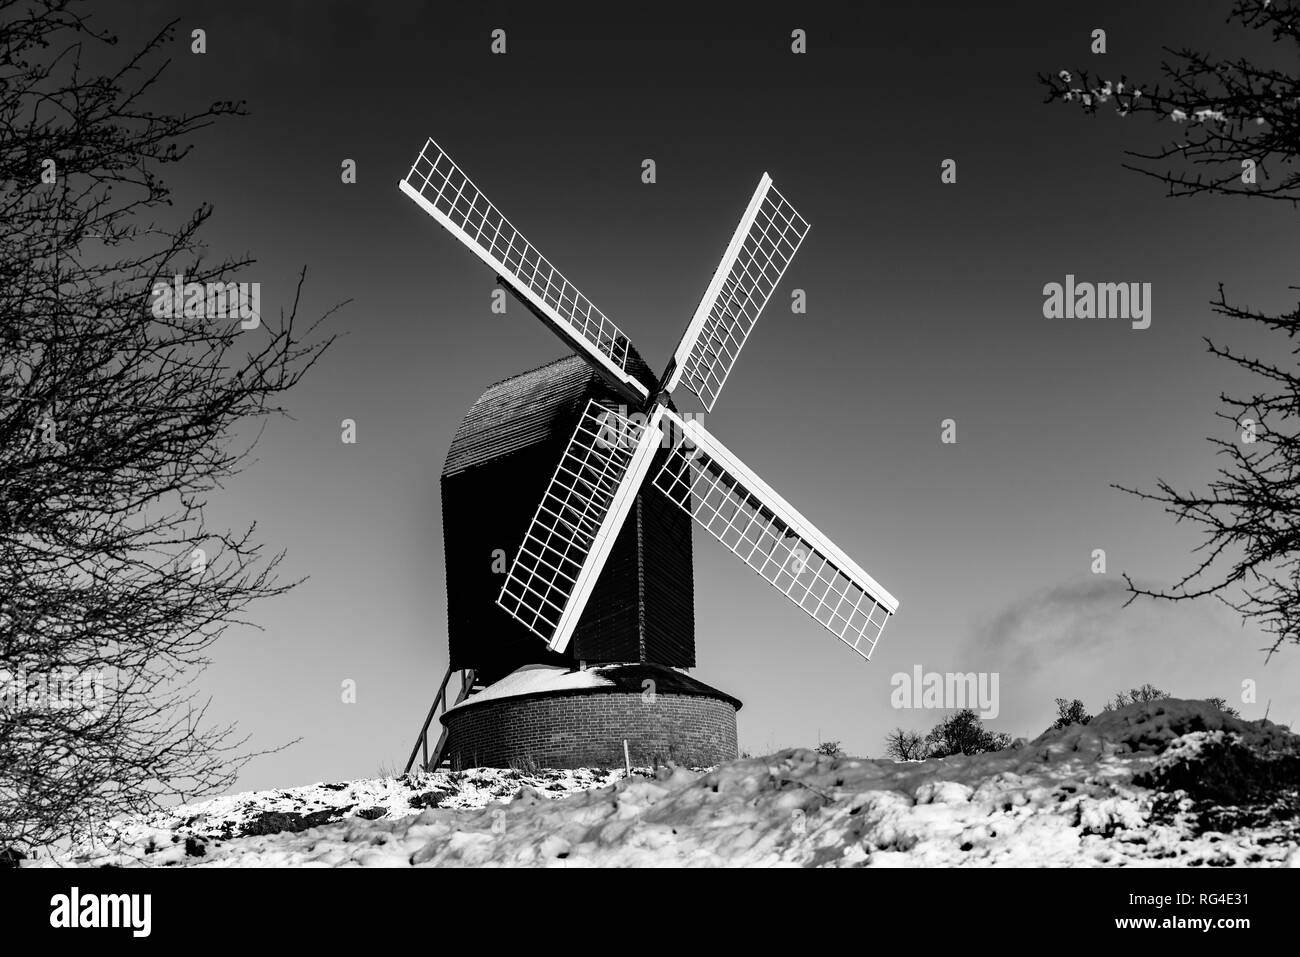 Brill Windmil, Landscape in the snow. Buckinghamshire, UK. - Stock Image